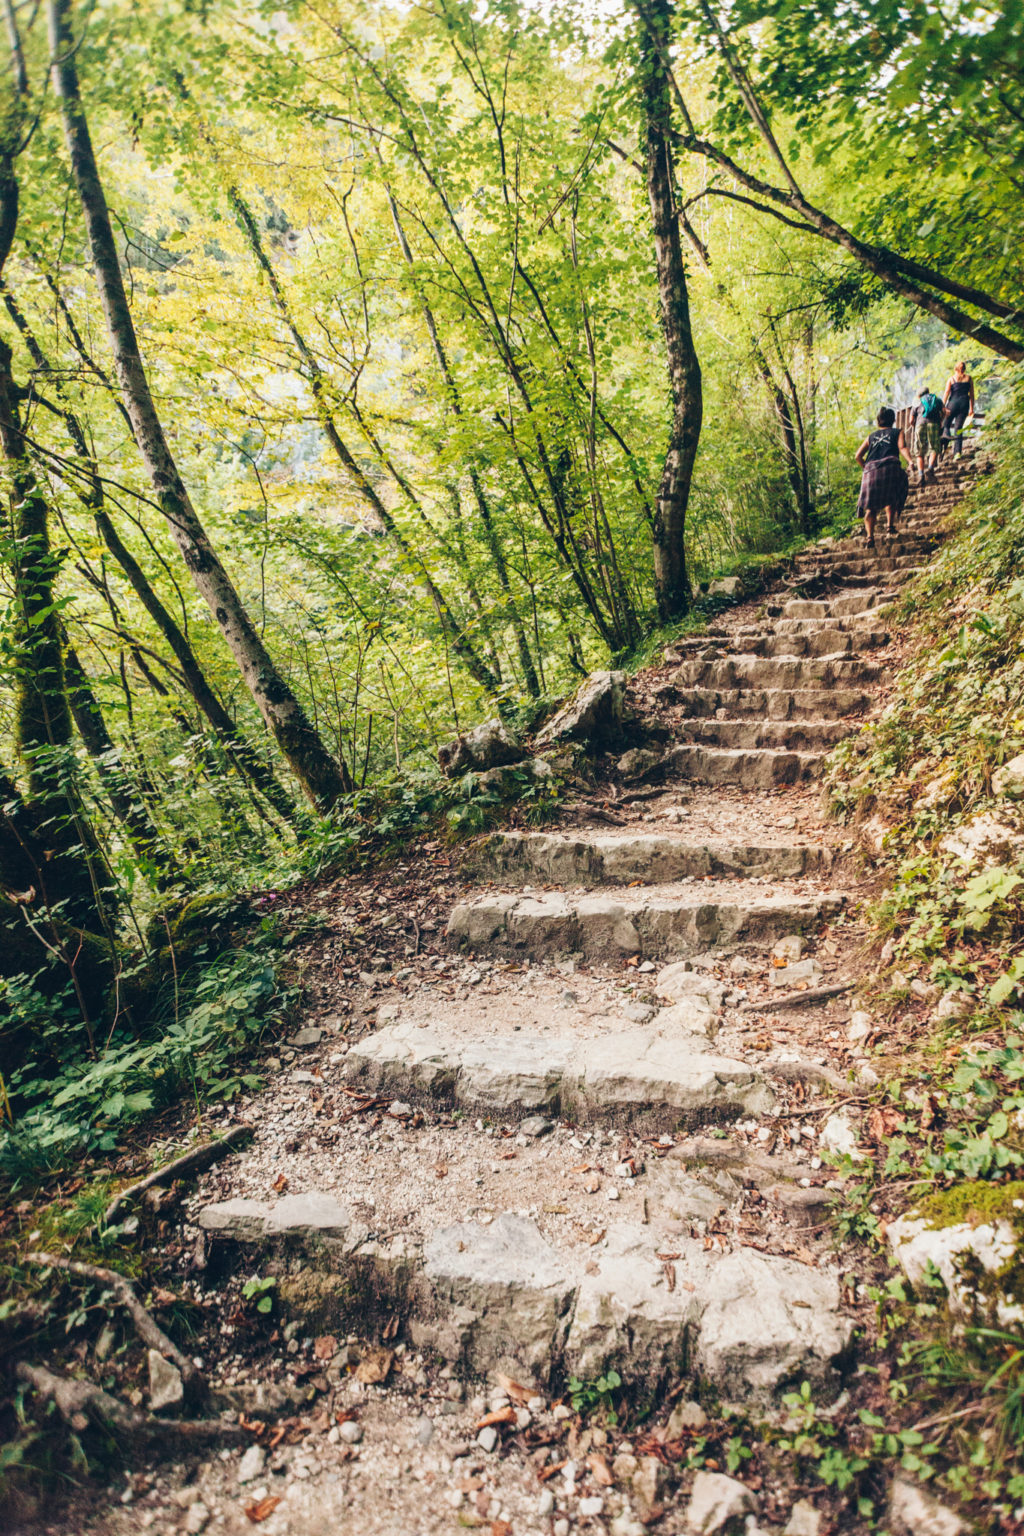 Tolmin Gorge in Slovenia hiking the stairs